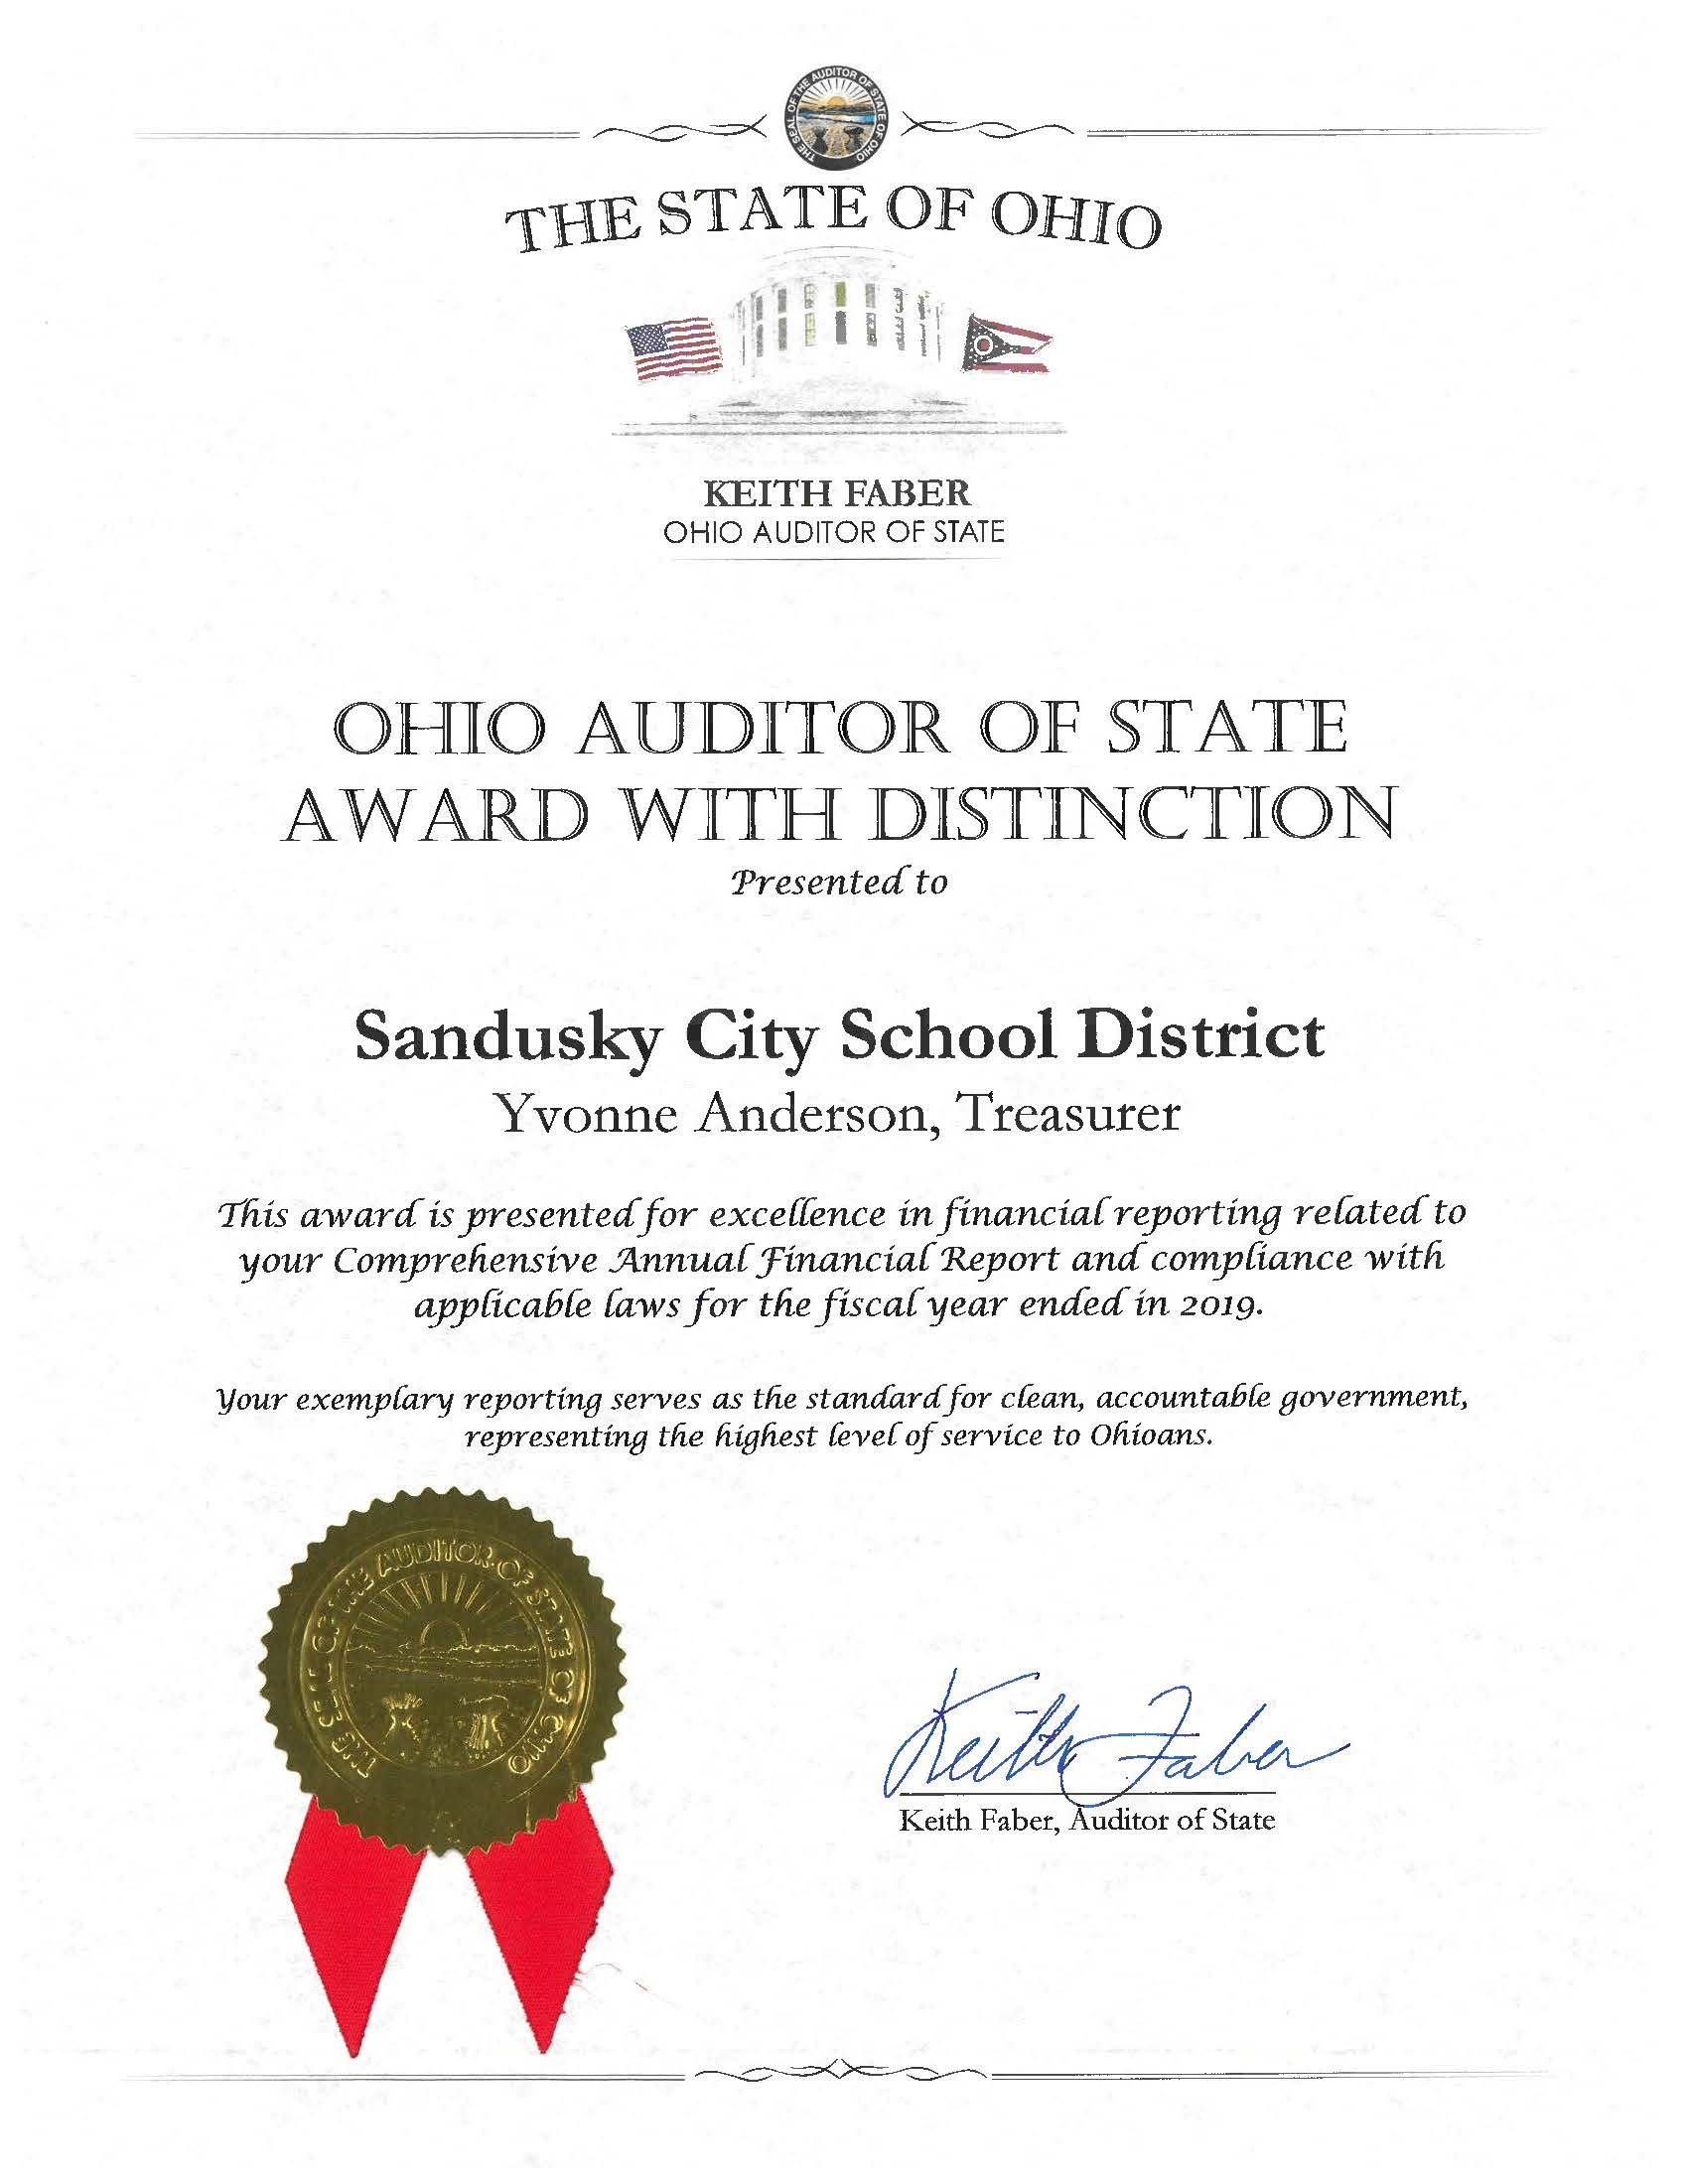 Auditor of the State Award with Distinction